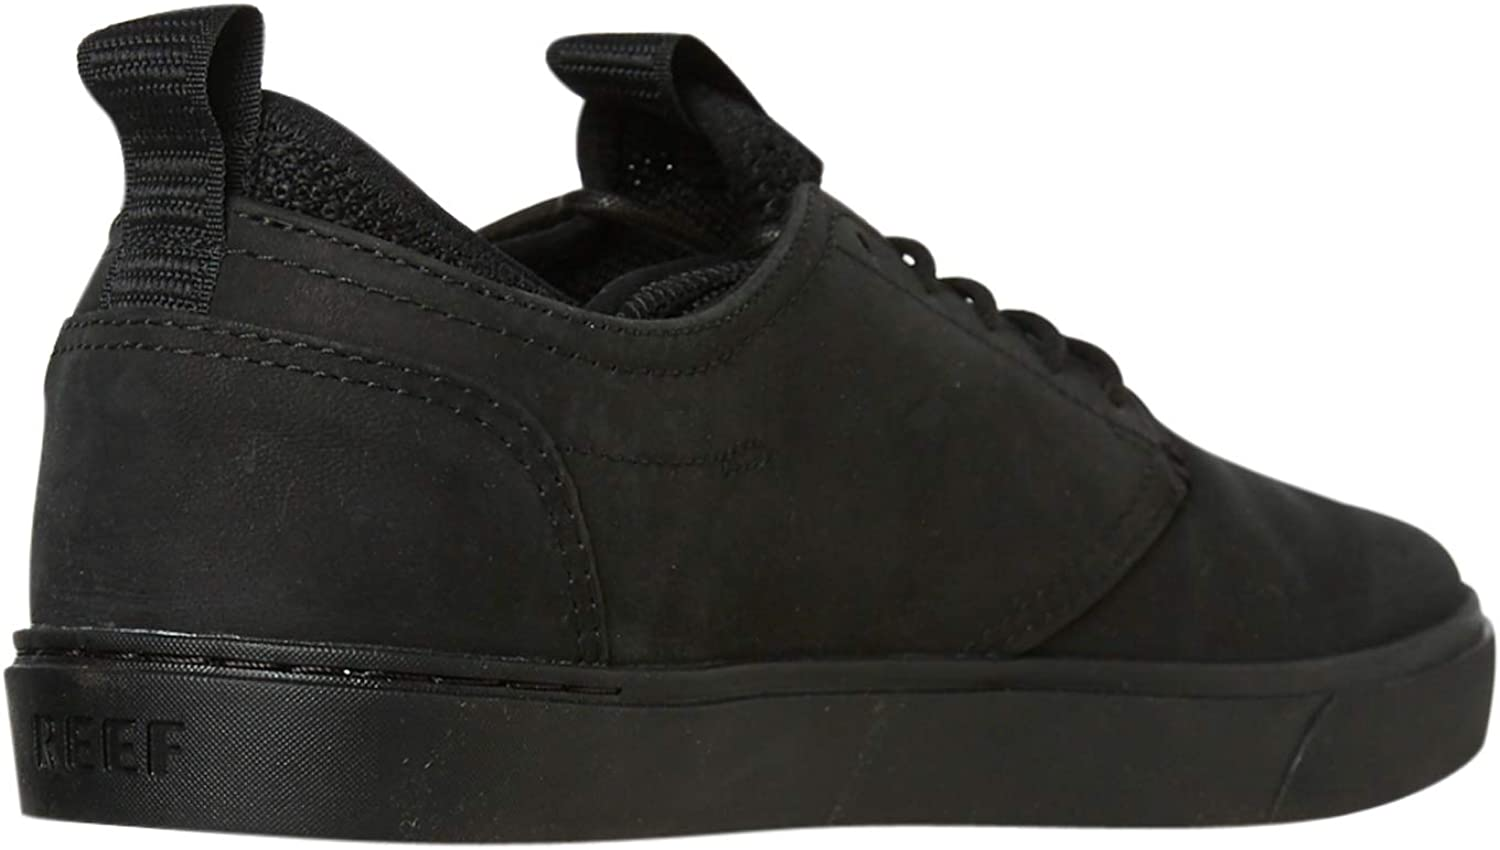 Details about  /Reef  Men/'s A3olr Reef Discovery Black M